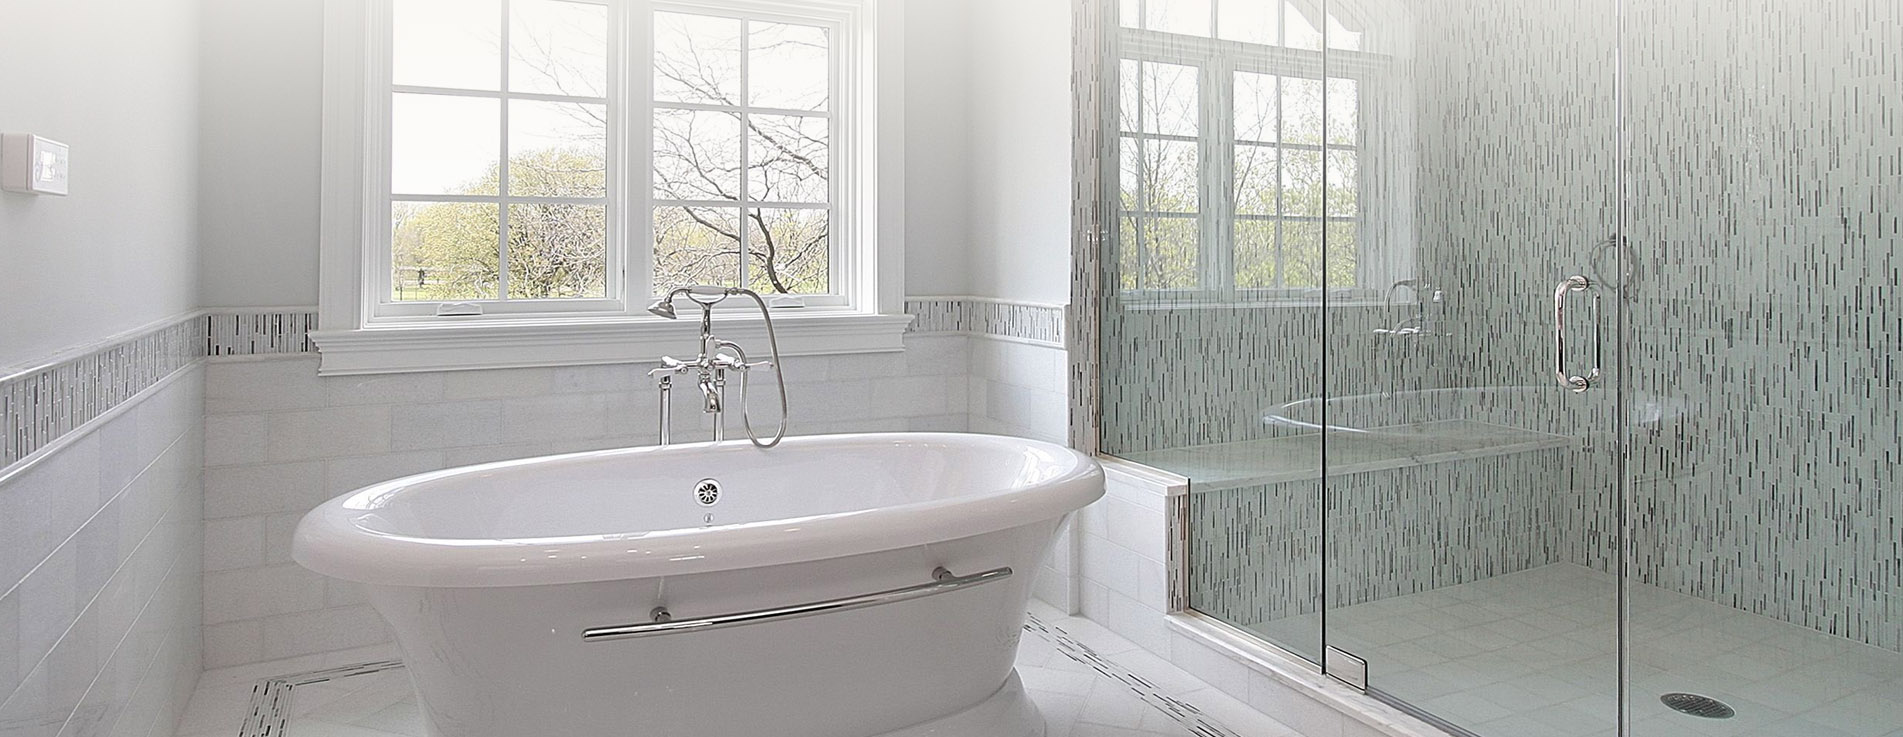 Benefits of Cleaning and Sealing Your Tile and Grout - Alpine ...